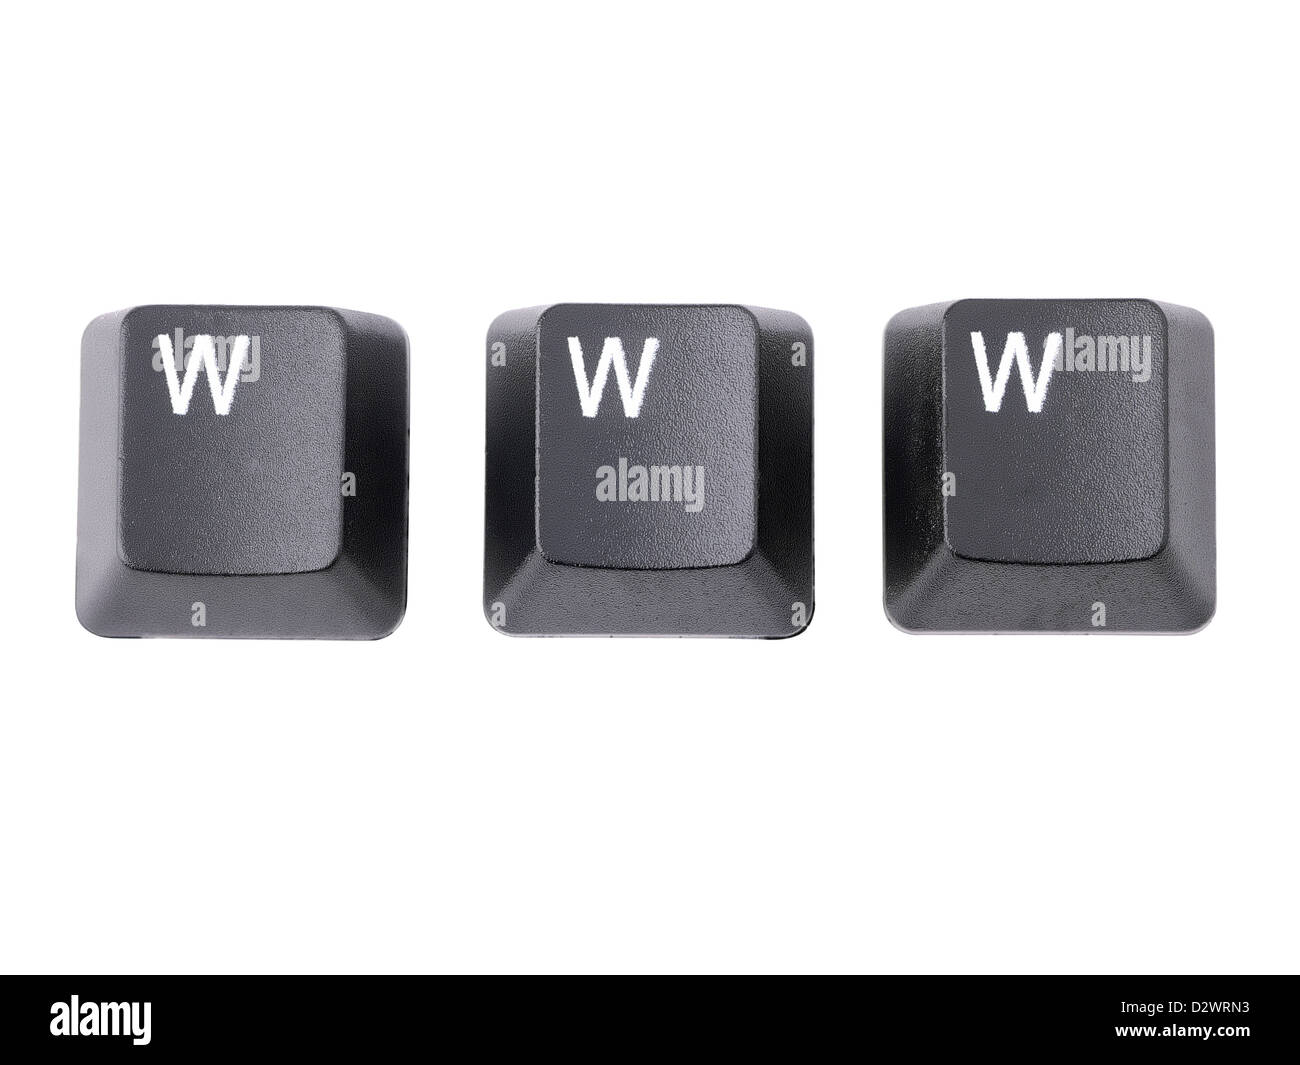 Three black keyboard keys spelling WWW acronym over white background - Stock Image